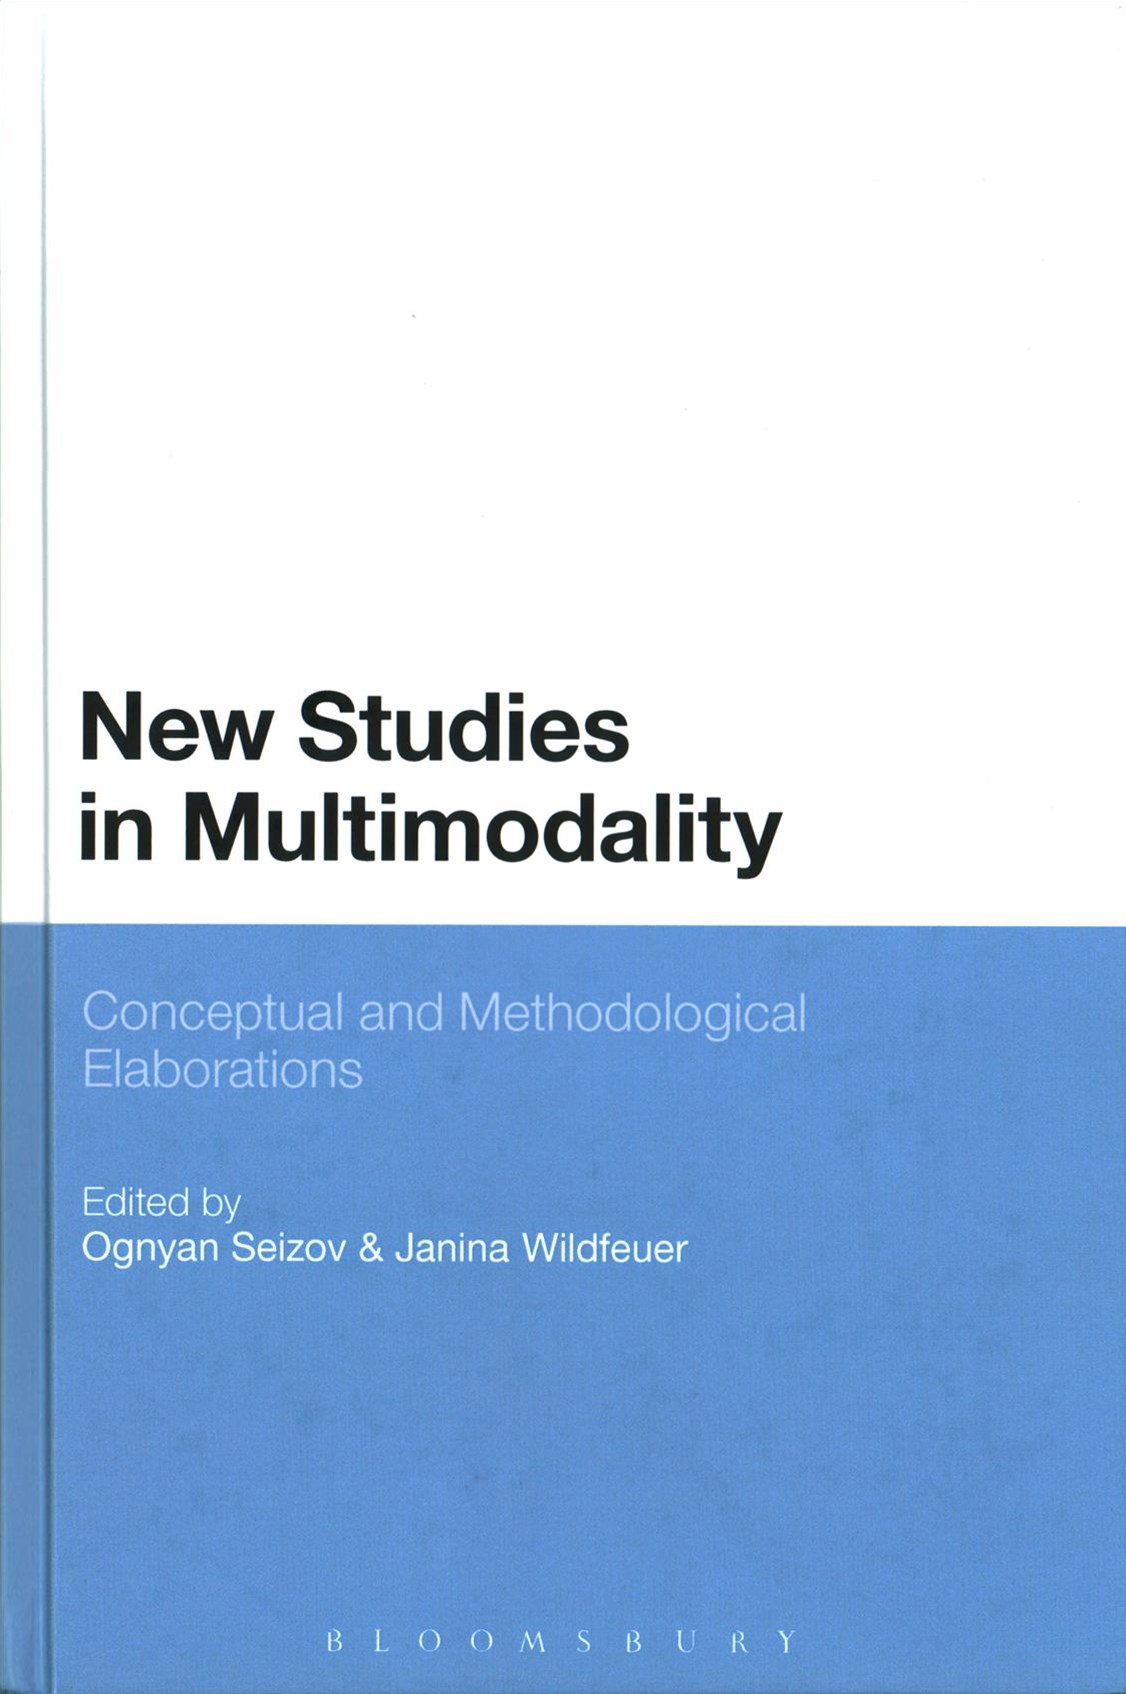 New Studies in Multimodality